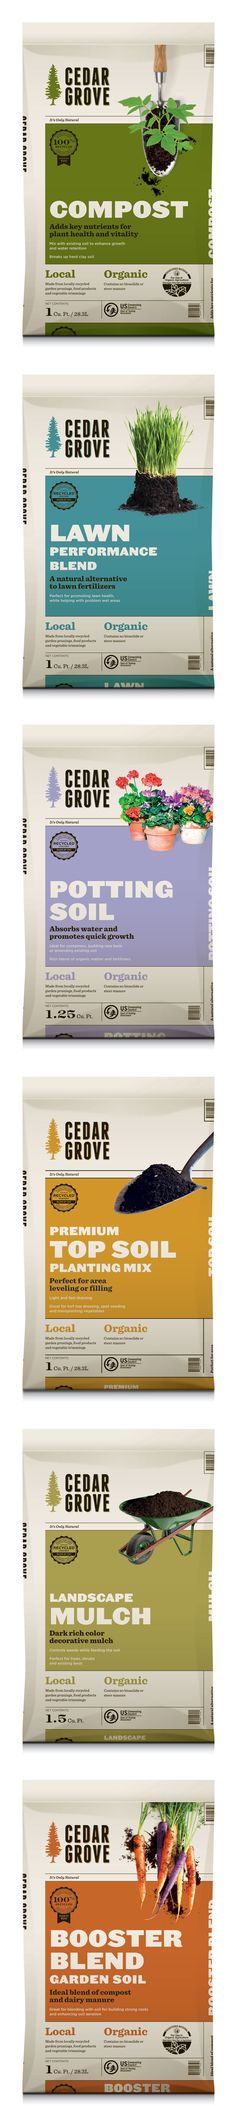 Cedar Grove Packaging